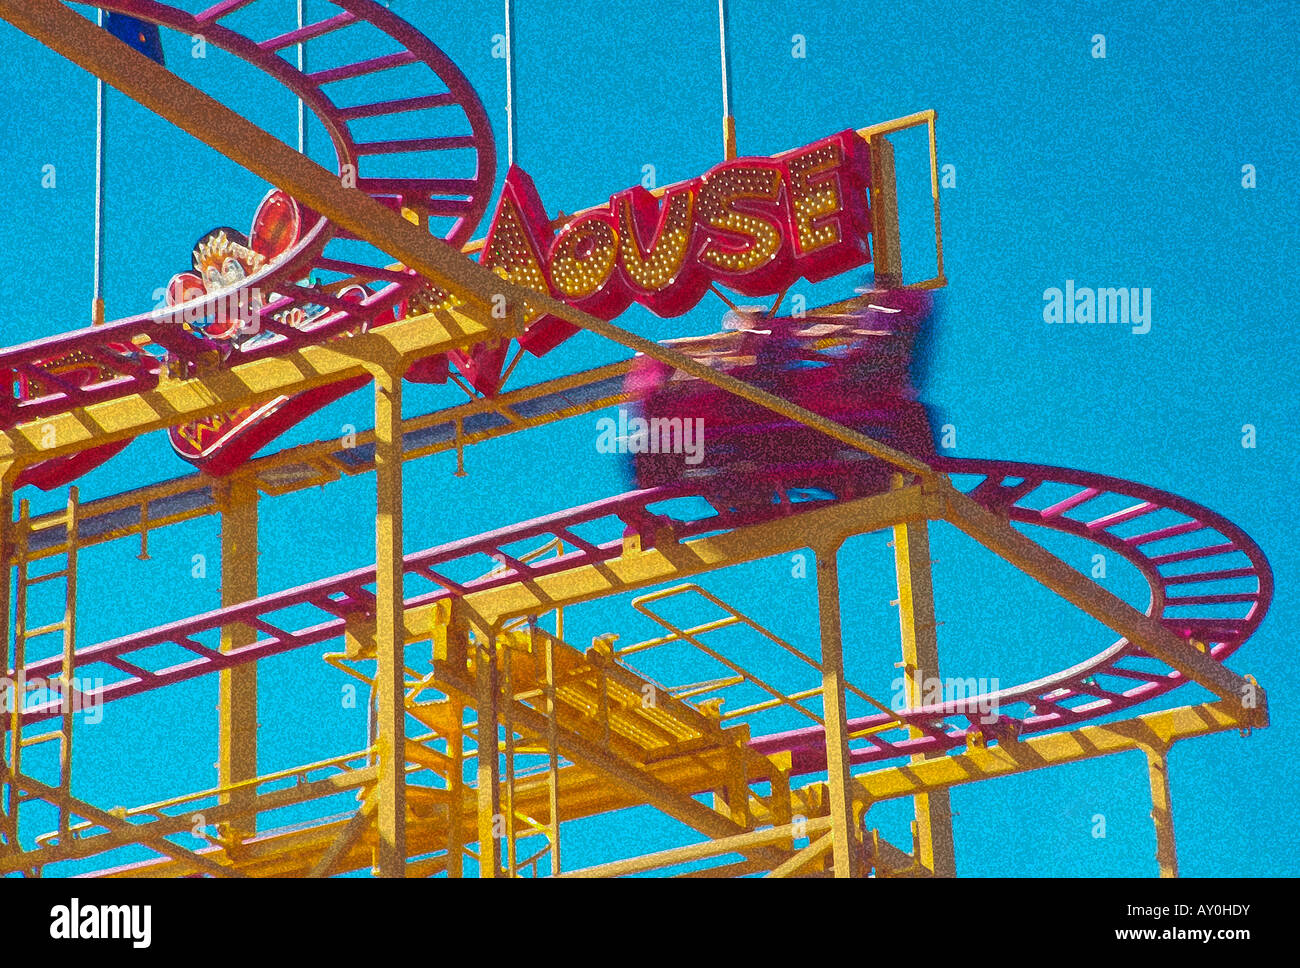 an artistic rendition of an exhilarating motion filled ride at a local amusement park near salt lake city utah usa